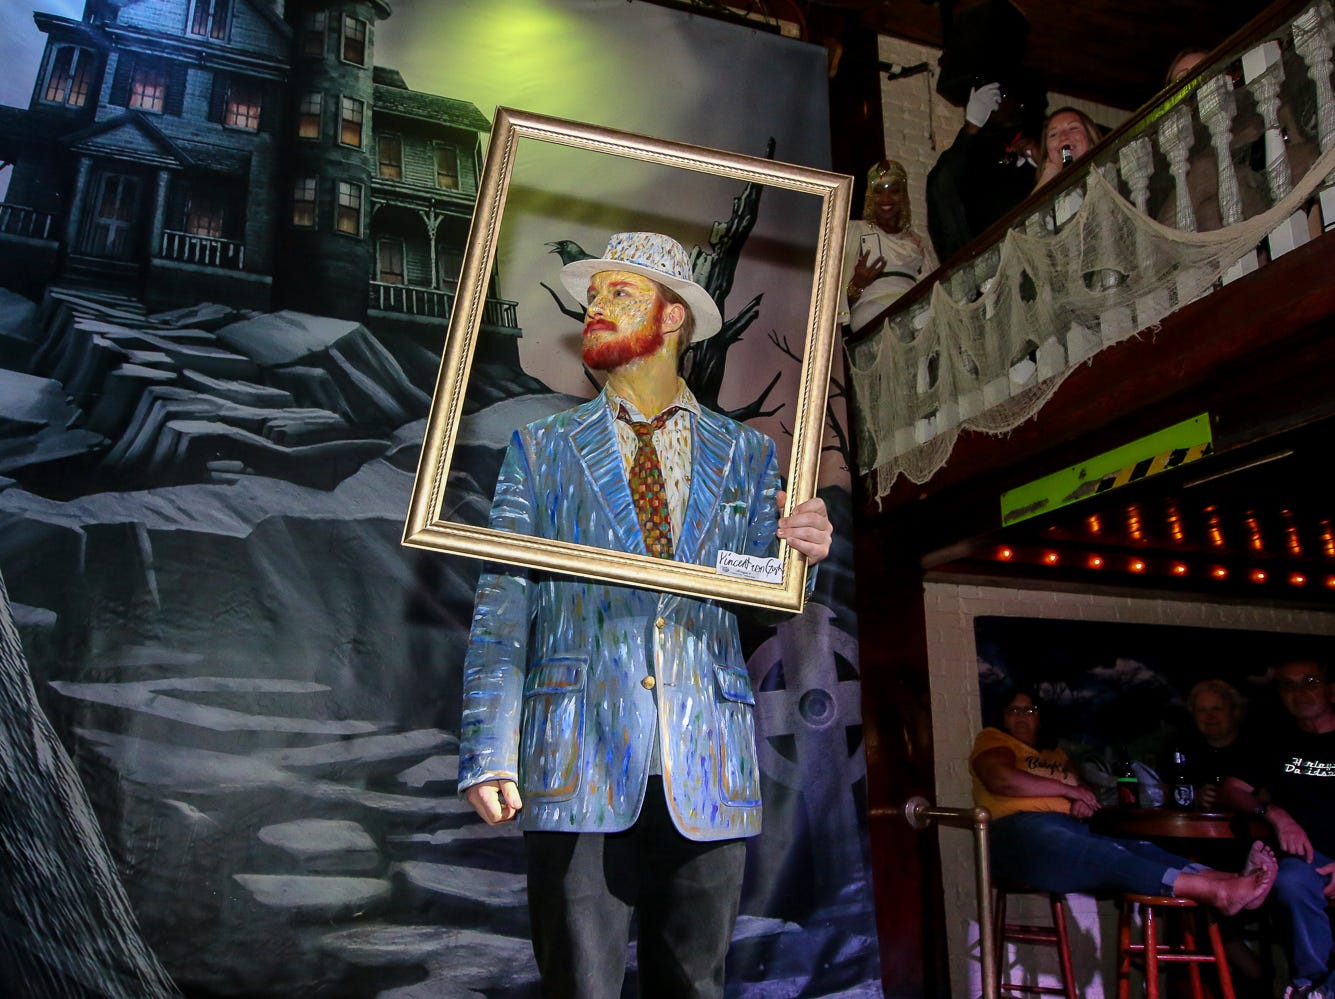 """Vincent van Gogh"" won 7th place in the $1,000 grand prize Halloween costume contest, which featured over 100 entrants, at Seville Quarter on Wednesday, October 31, 2018."